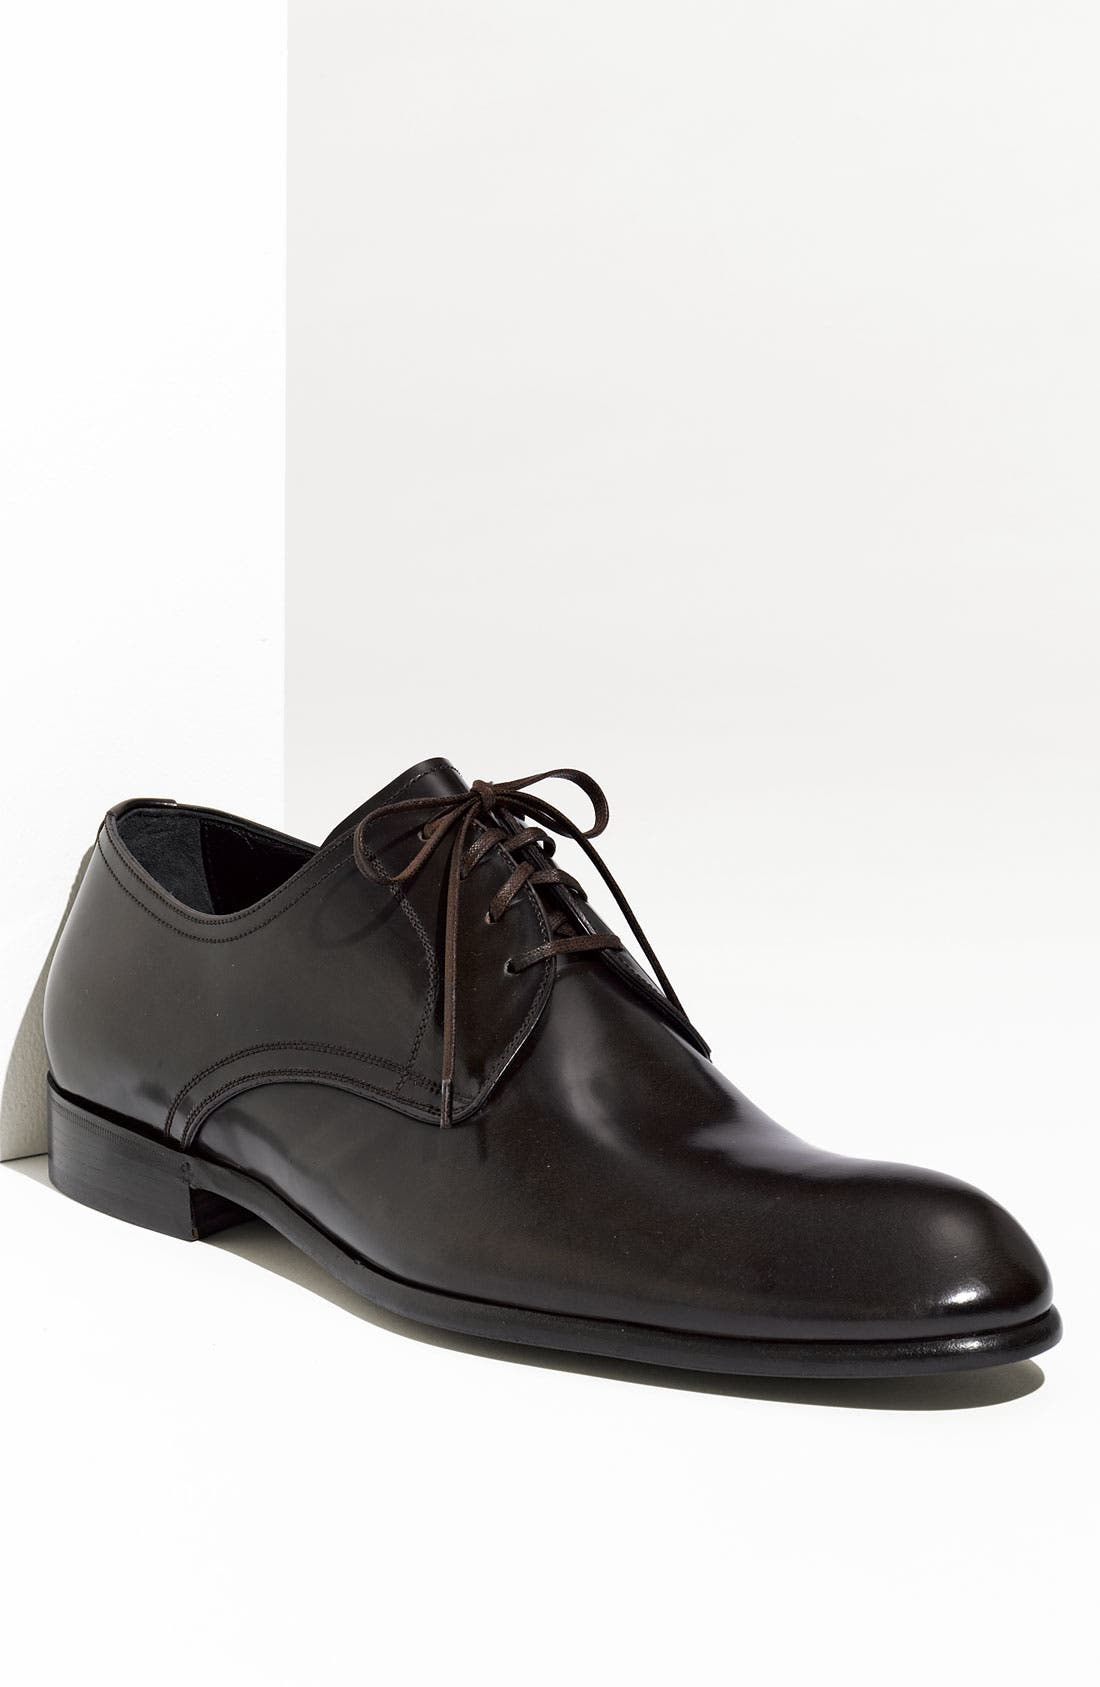 Alternate Image 1 Selected - Dolce&Gabbana Plain Toe Oxford